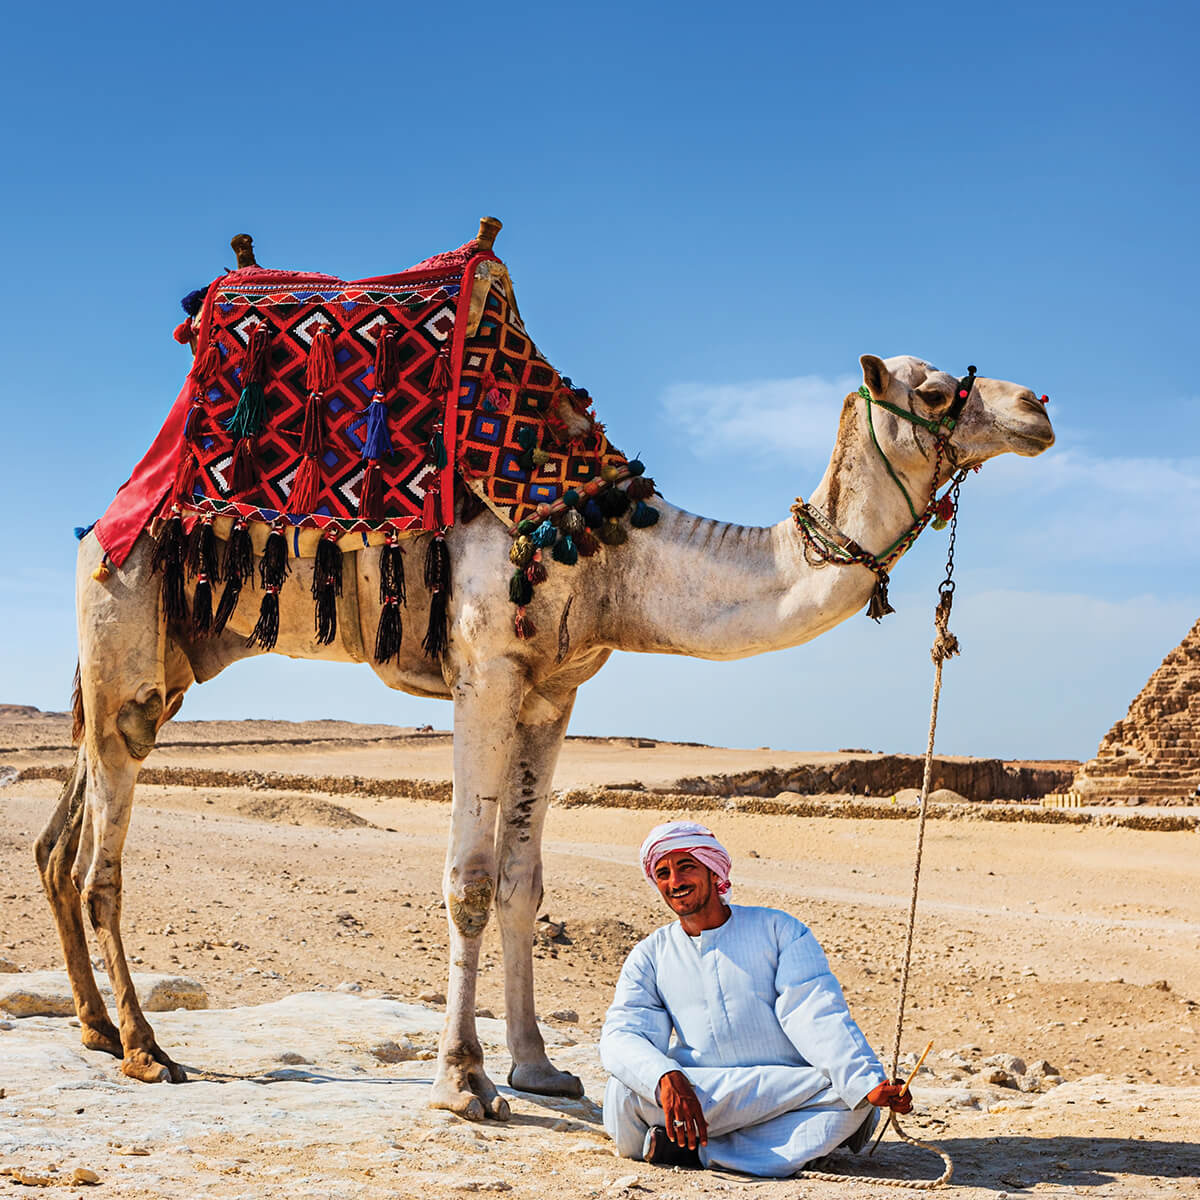 Portrait image of man and camel